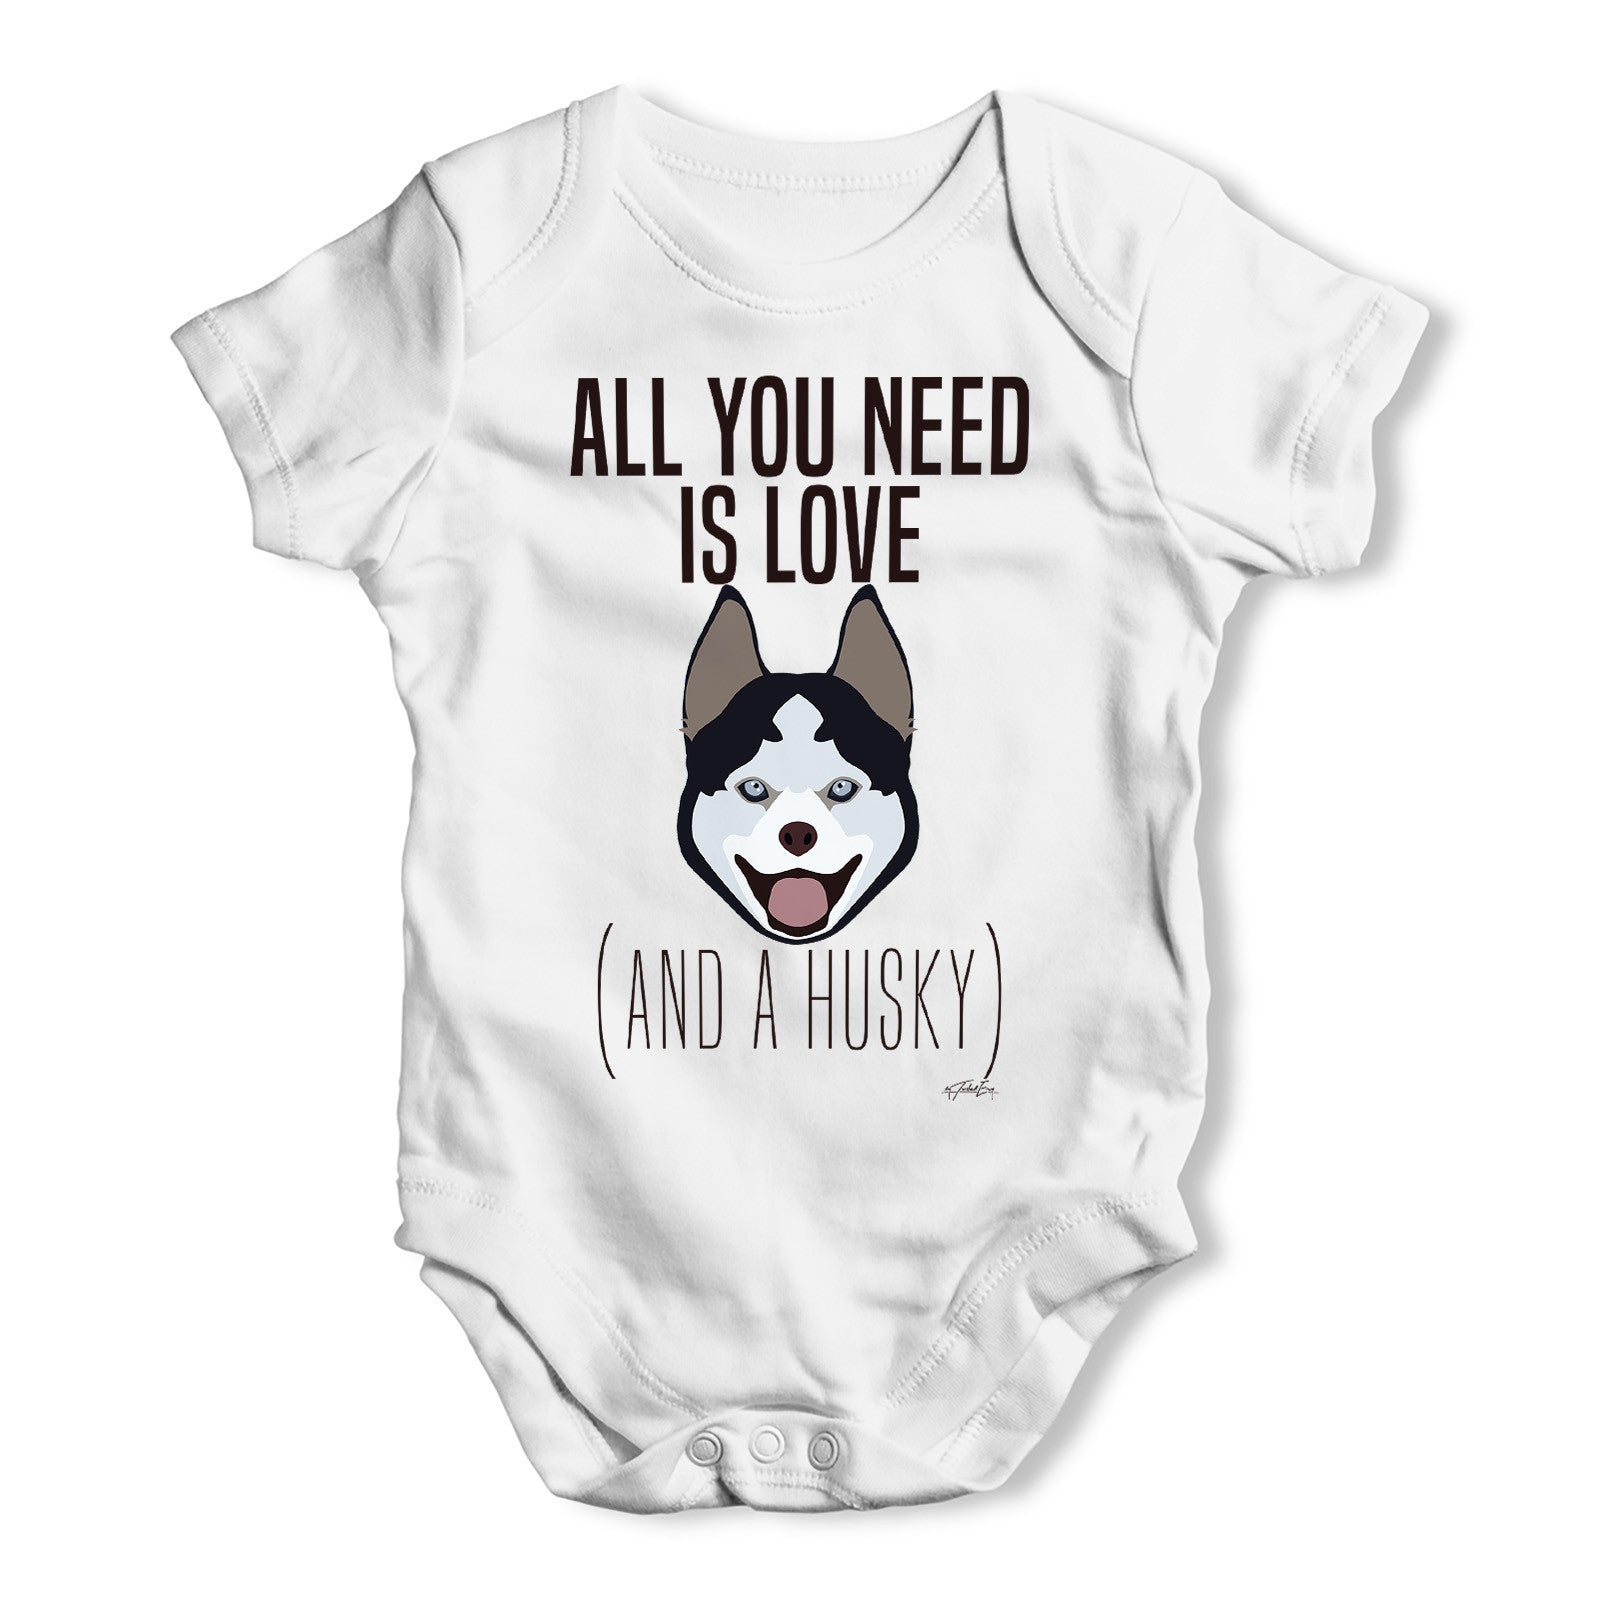 All You Need Is A Husky Baby Grow Bodysuit – Twisted Envy